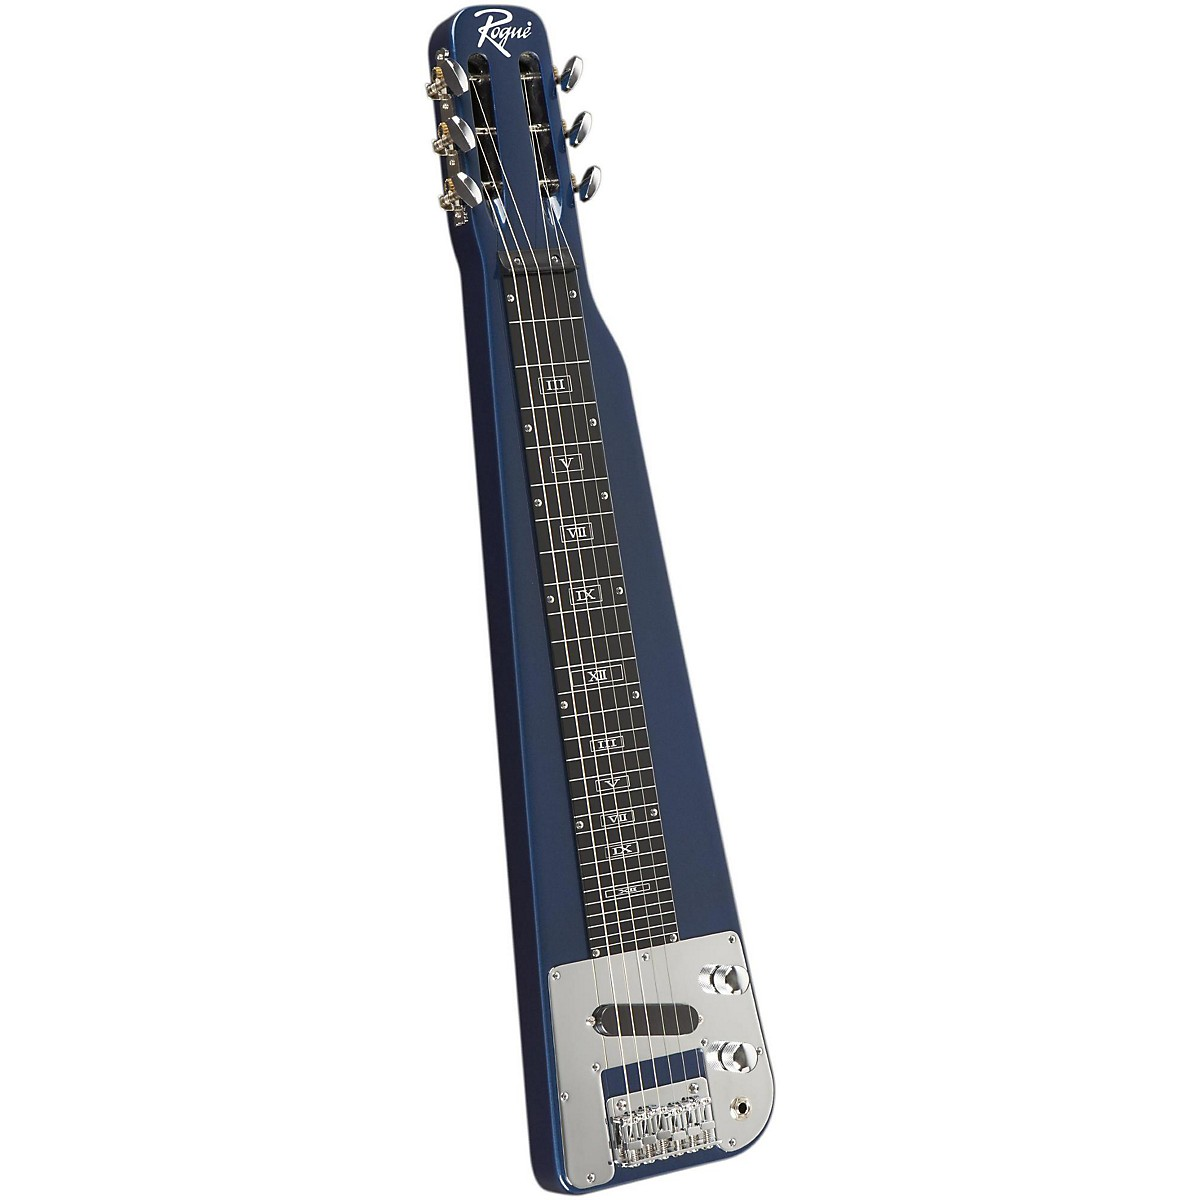 Rogue RLS-1 Lap Steel Guitar with Stand and Gig Bag